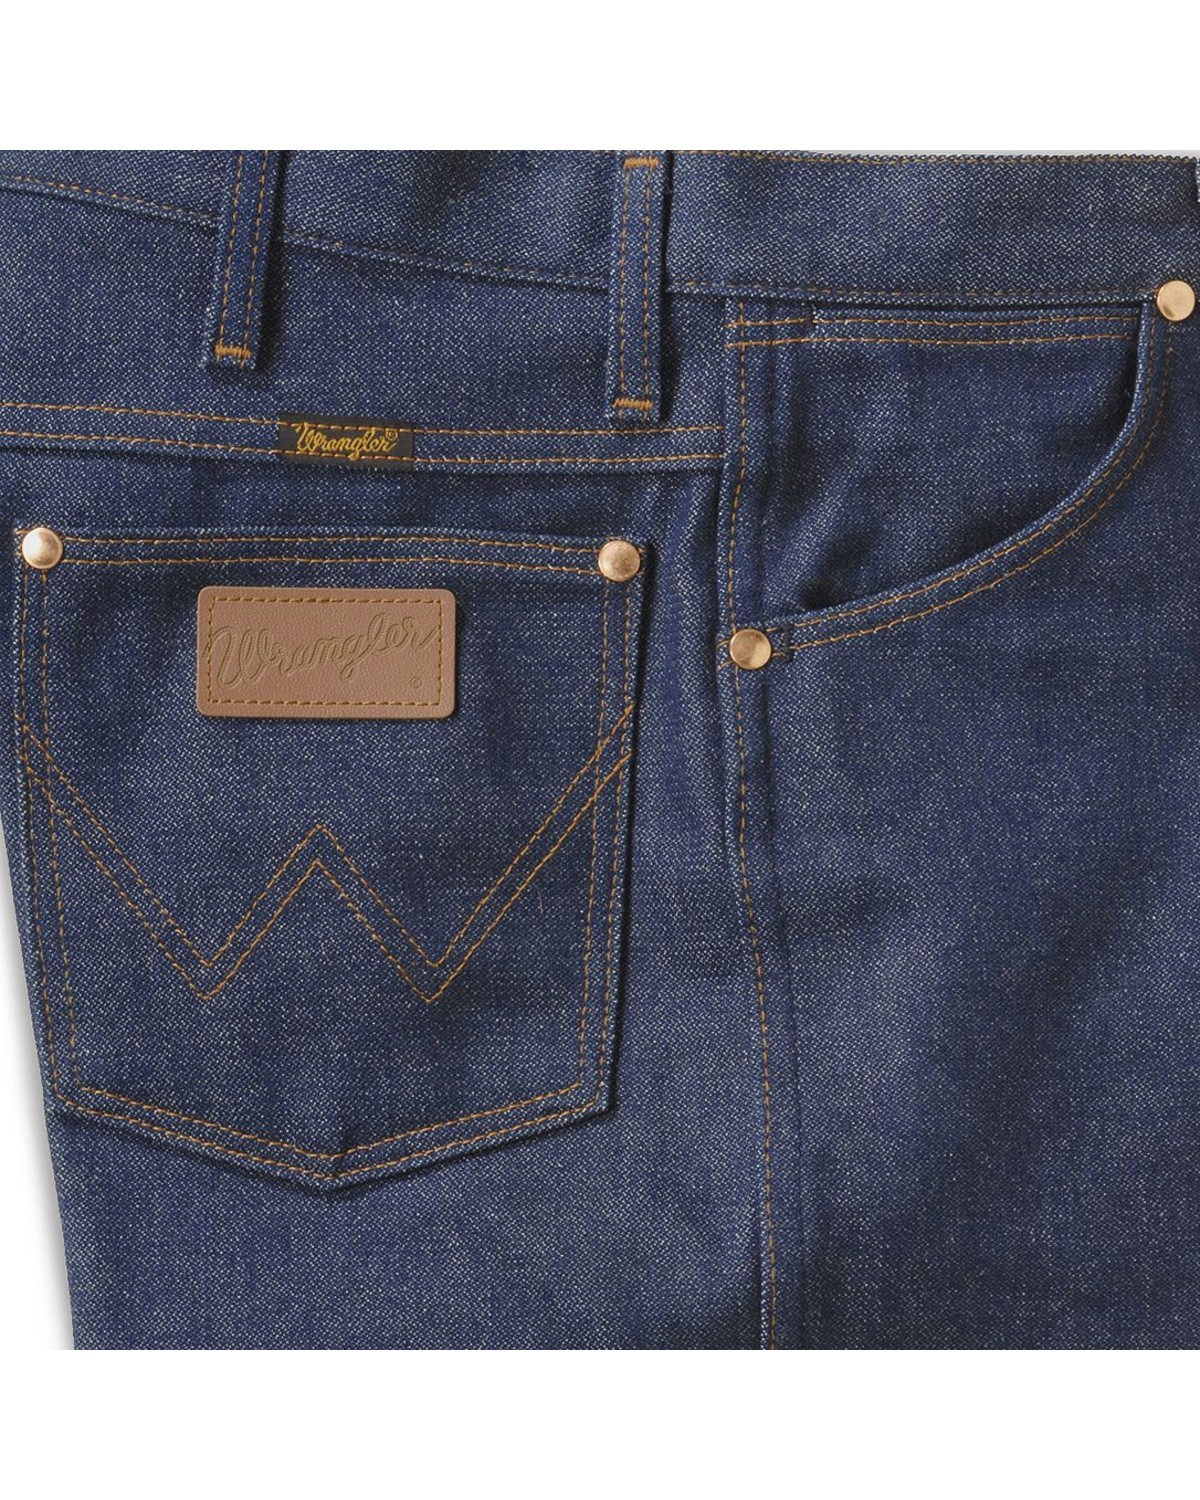 Wrangler 31mwz Cowboy Cut Rigid Relaxed Fit Jeans Sheplers